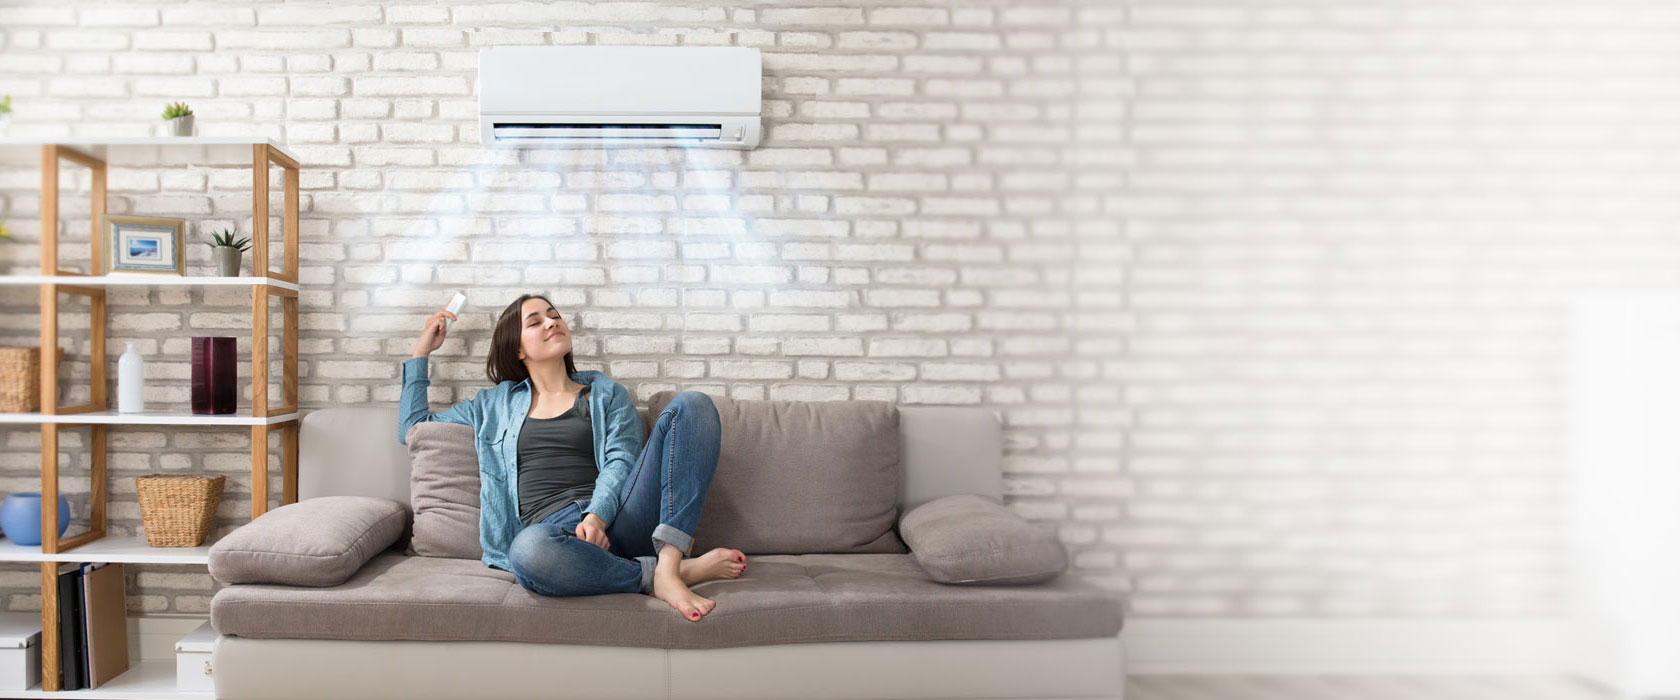 Cool your family during summer or warm up your home during winter with a new reverse cycle air conditioning system